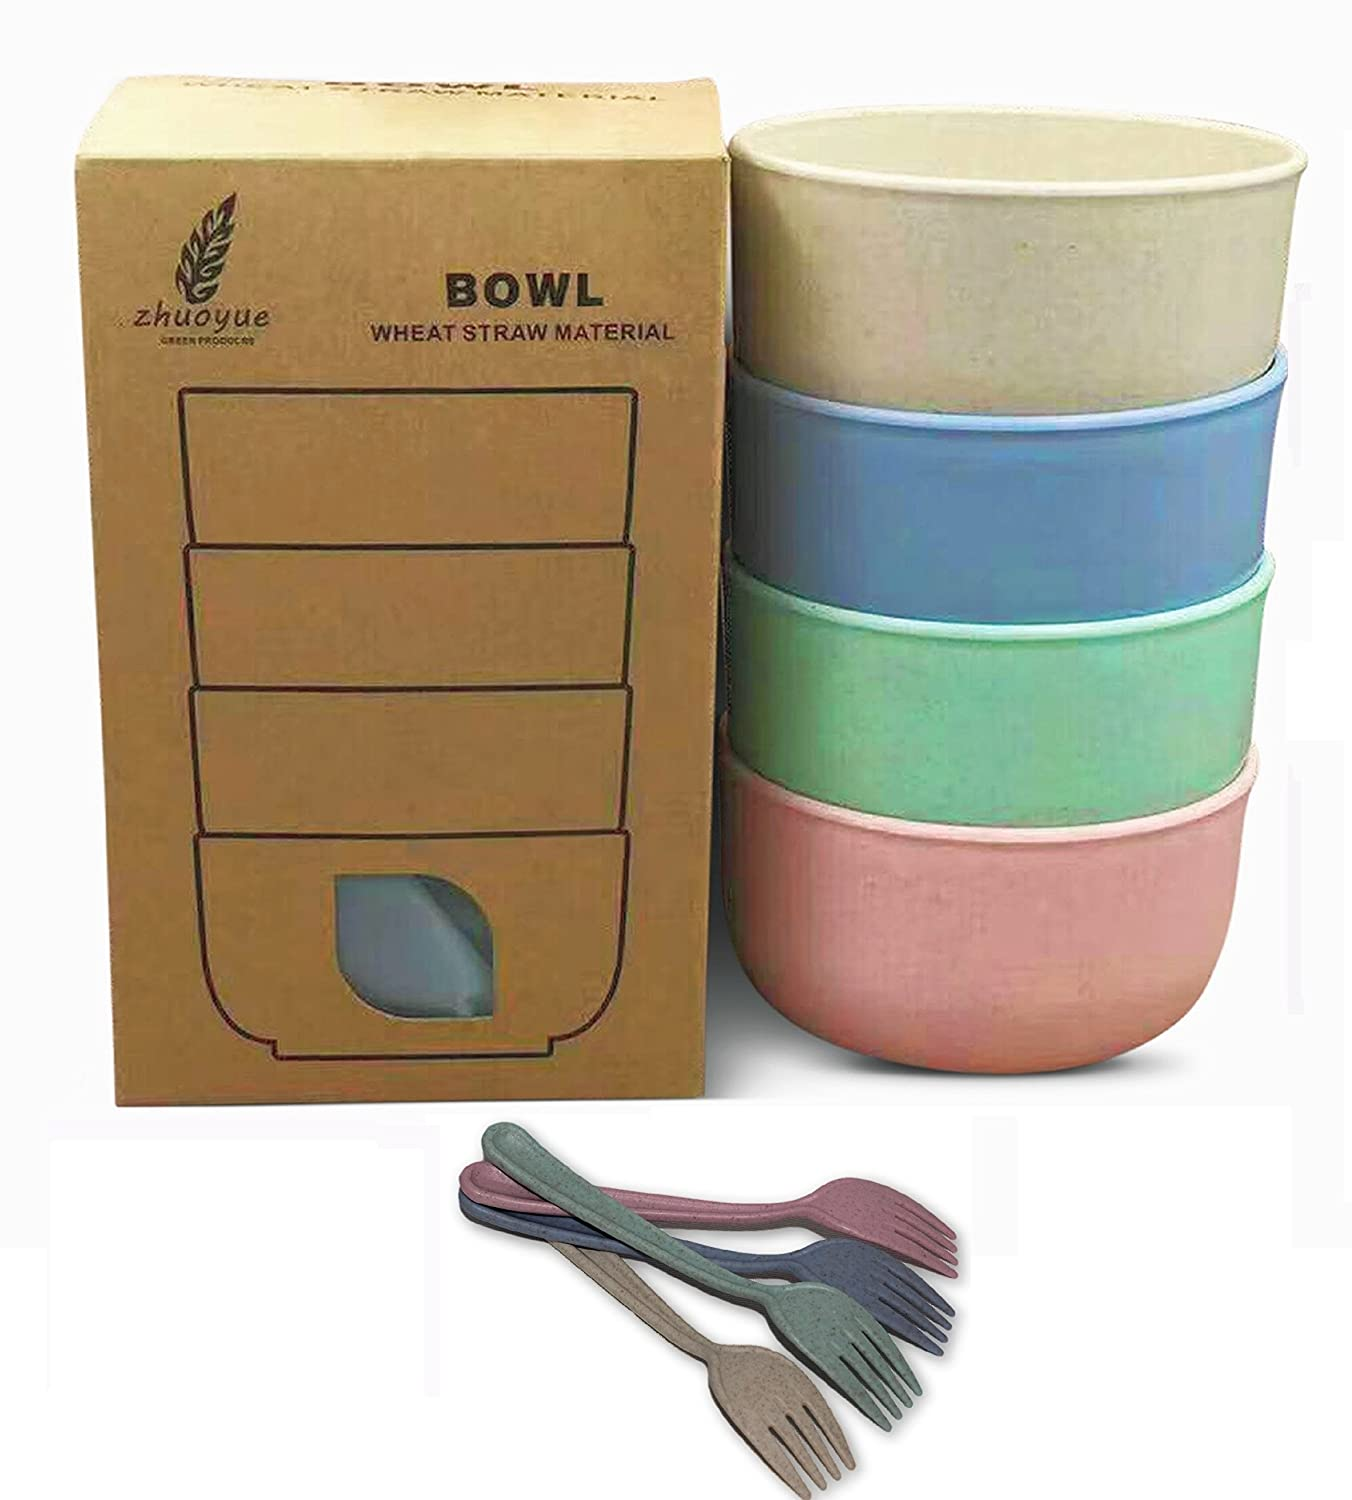 Bowls for Kids, Snacks, Ice cream, fruits, Soups, desserts - Set of 4 with forks - Wheat Straw Eco-friendly Material - BPA FREE, FDA Approved - Assorted Colors - Capacity: 14 oz Hermen